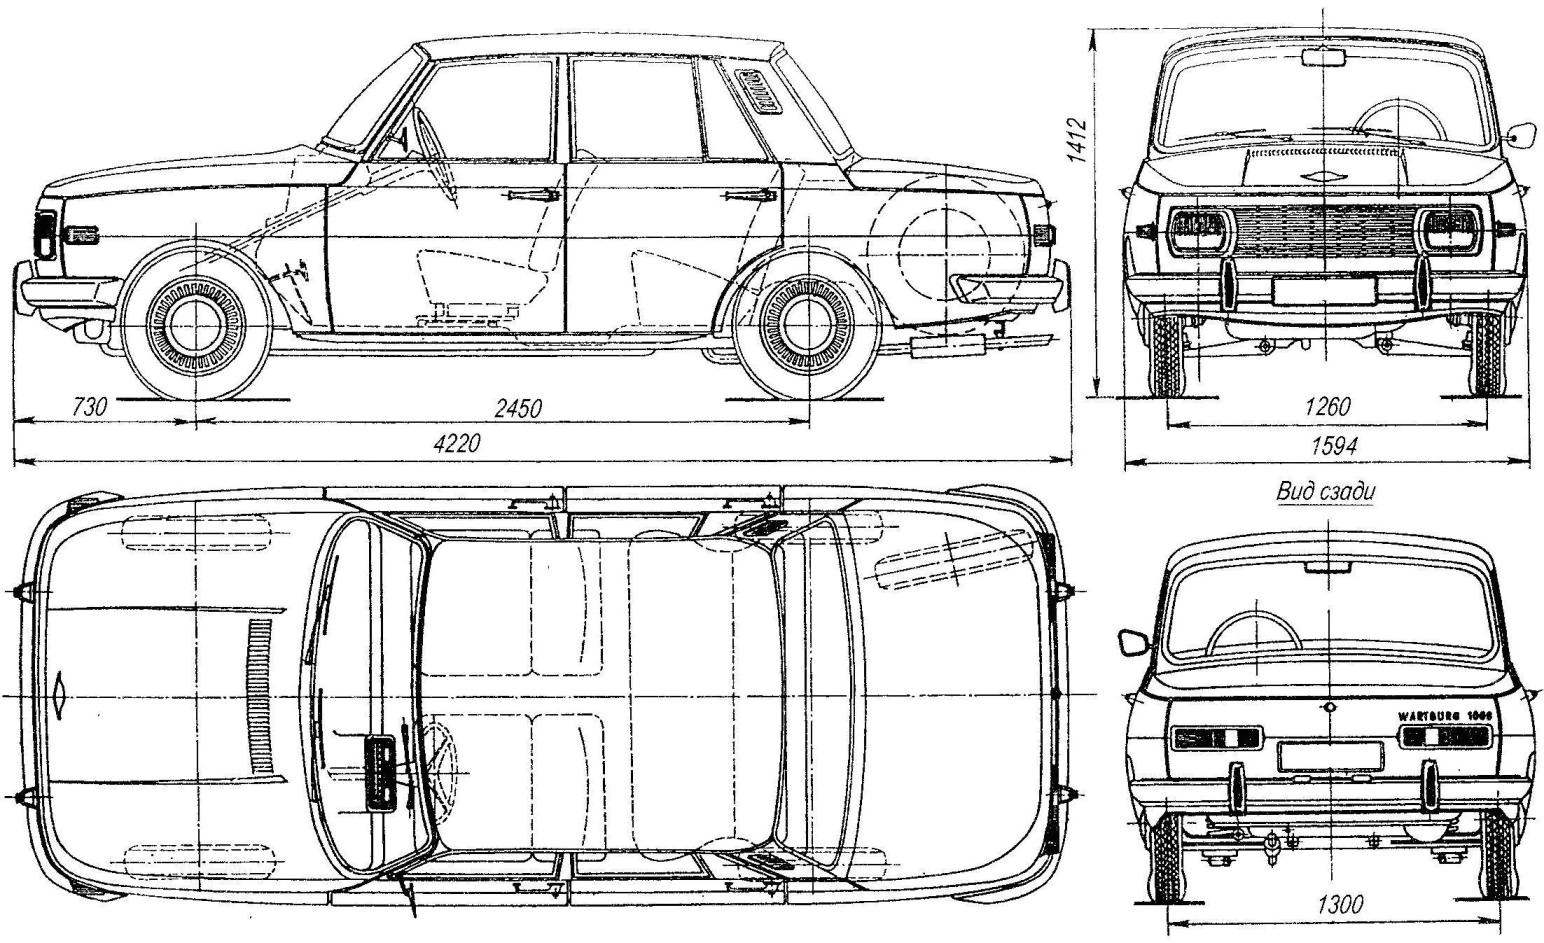 Geometric diagram of the Wartburg 353